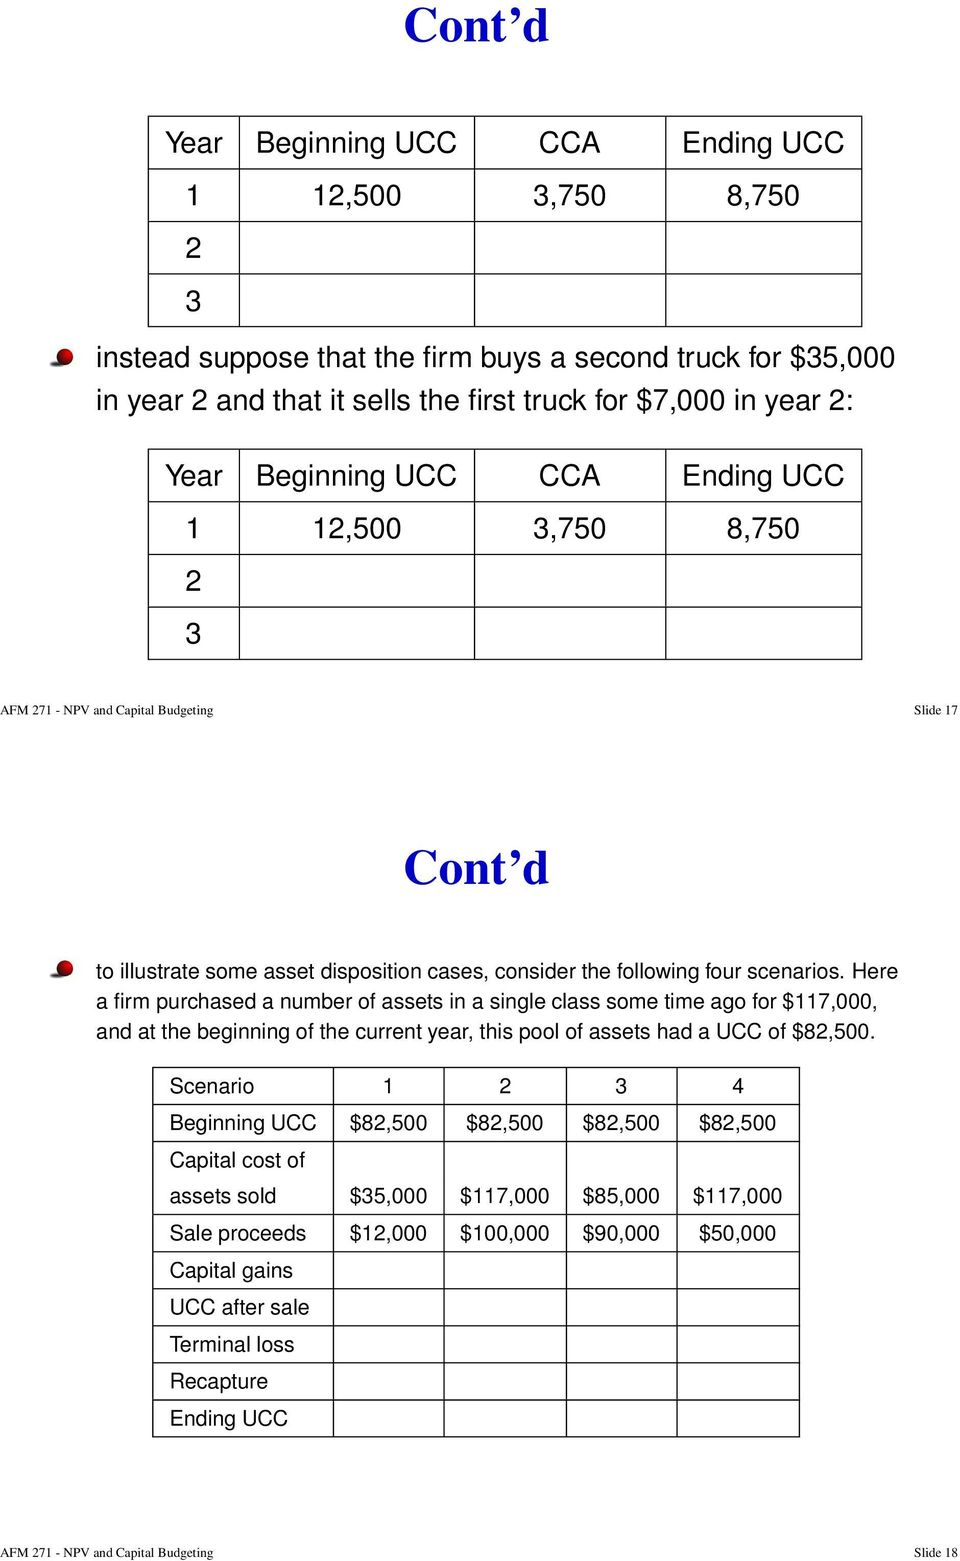 Here a firm purchased a number of assets in a single class some time ago for $117,000, and at the beginning of the current year, this pool of assets had a UCC of $82,500.